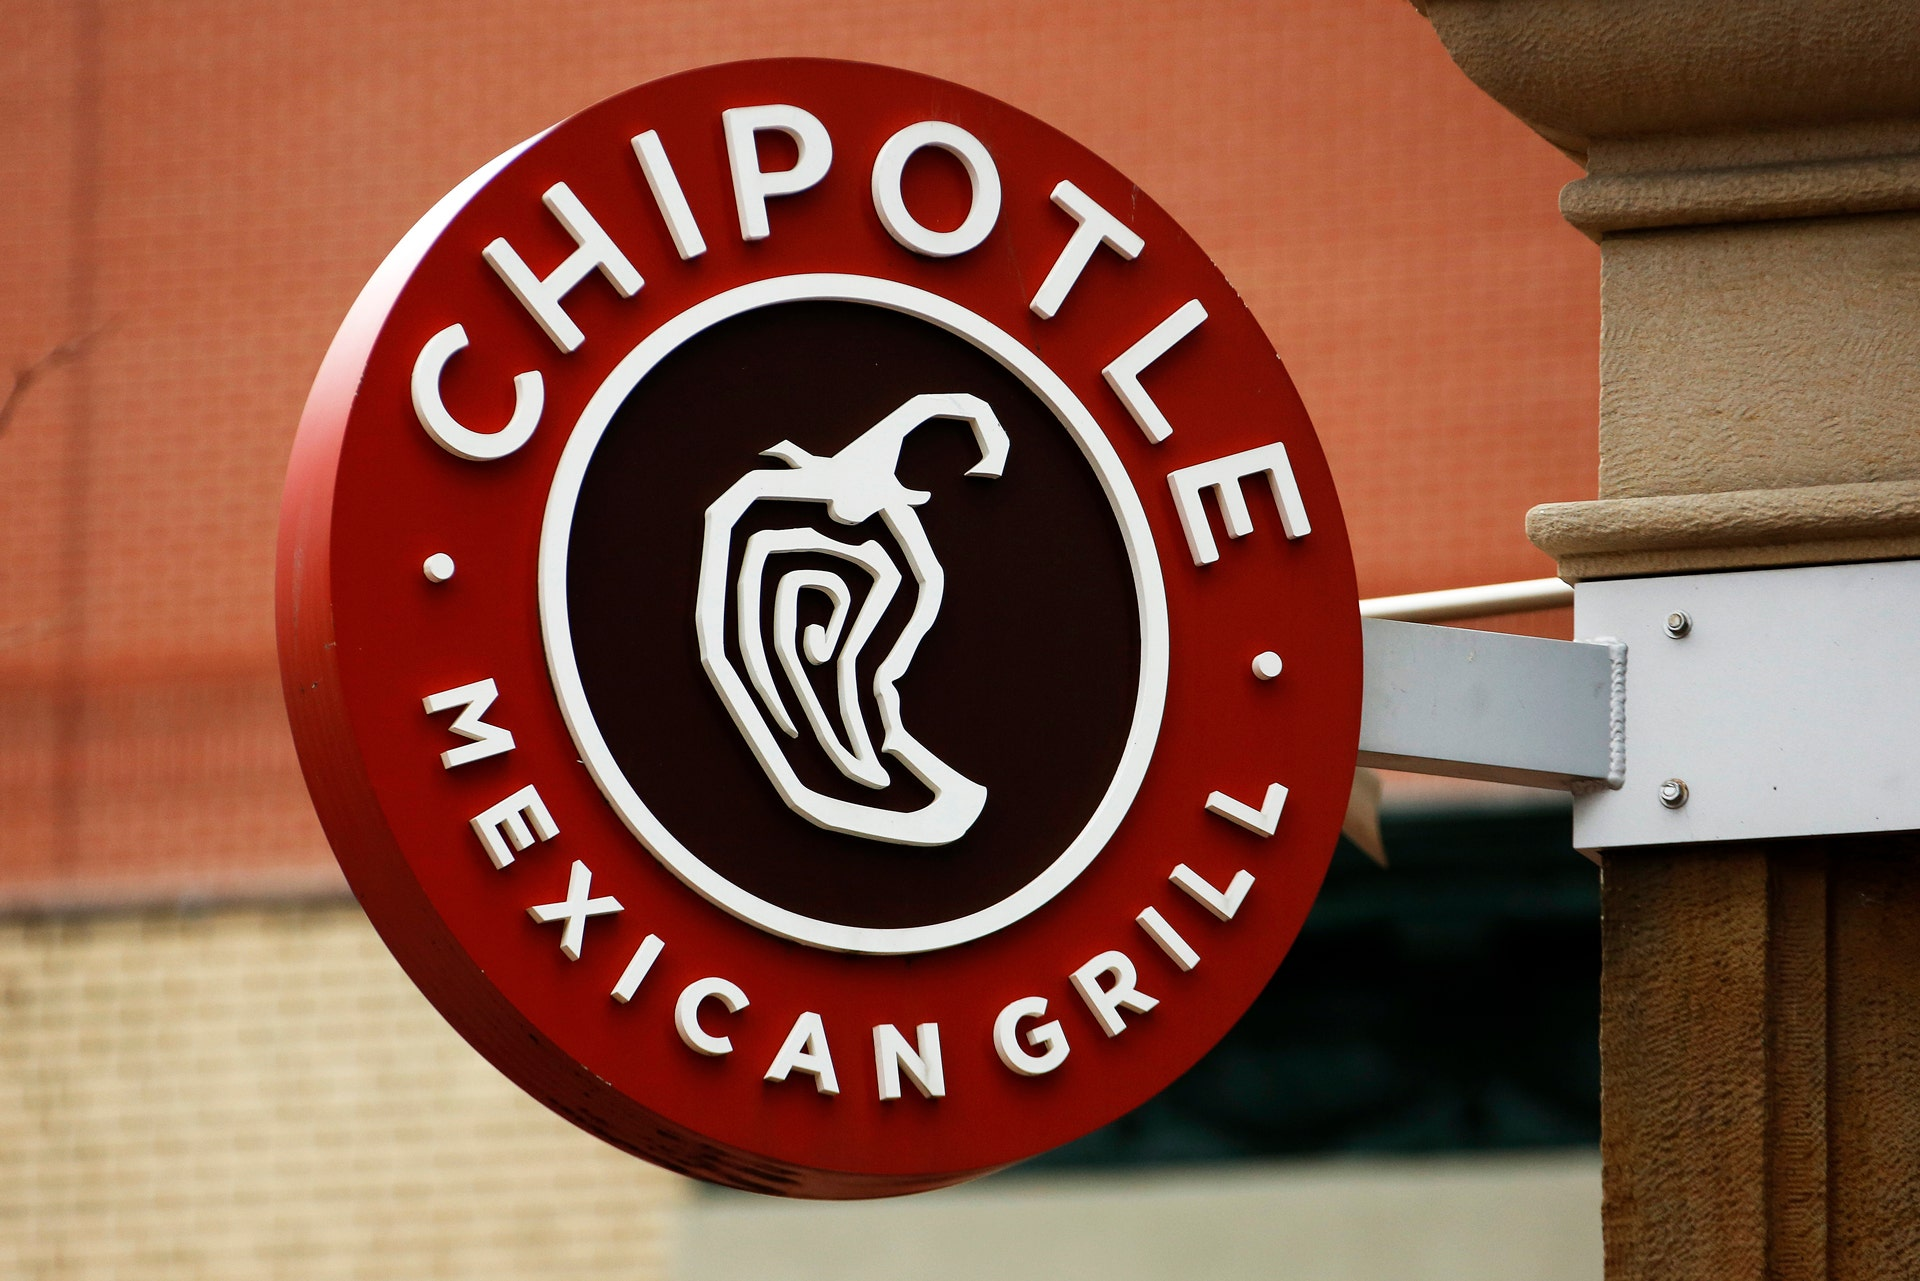 Chipotle Food Safety Scare Spooks Investors Fox Business